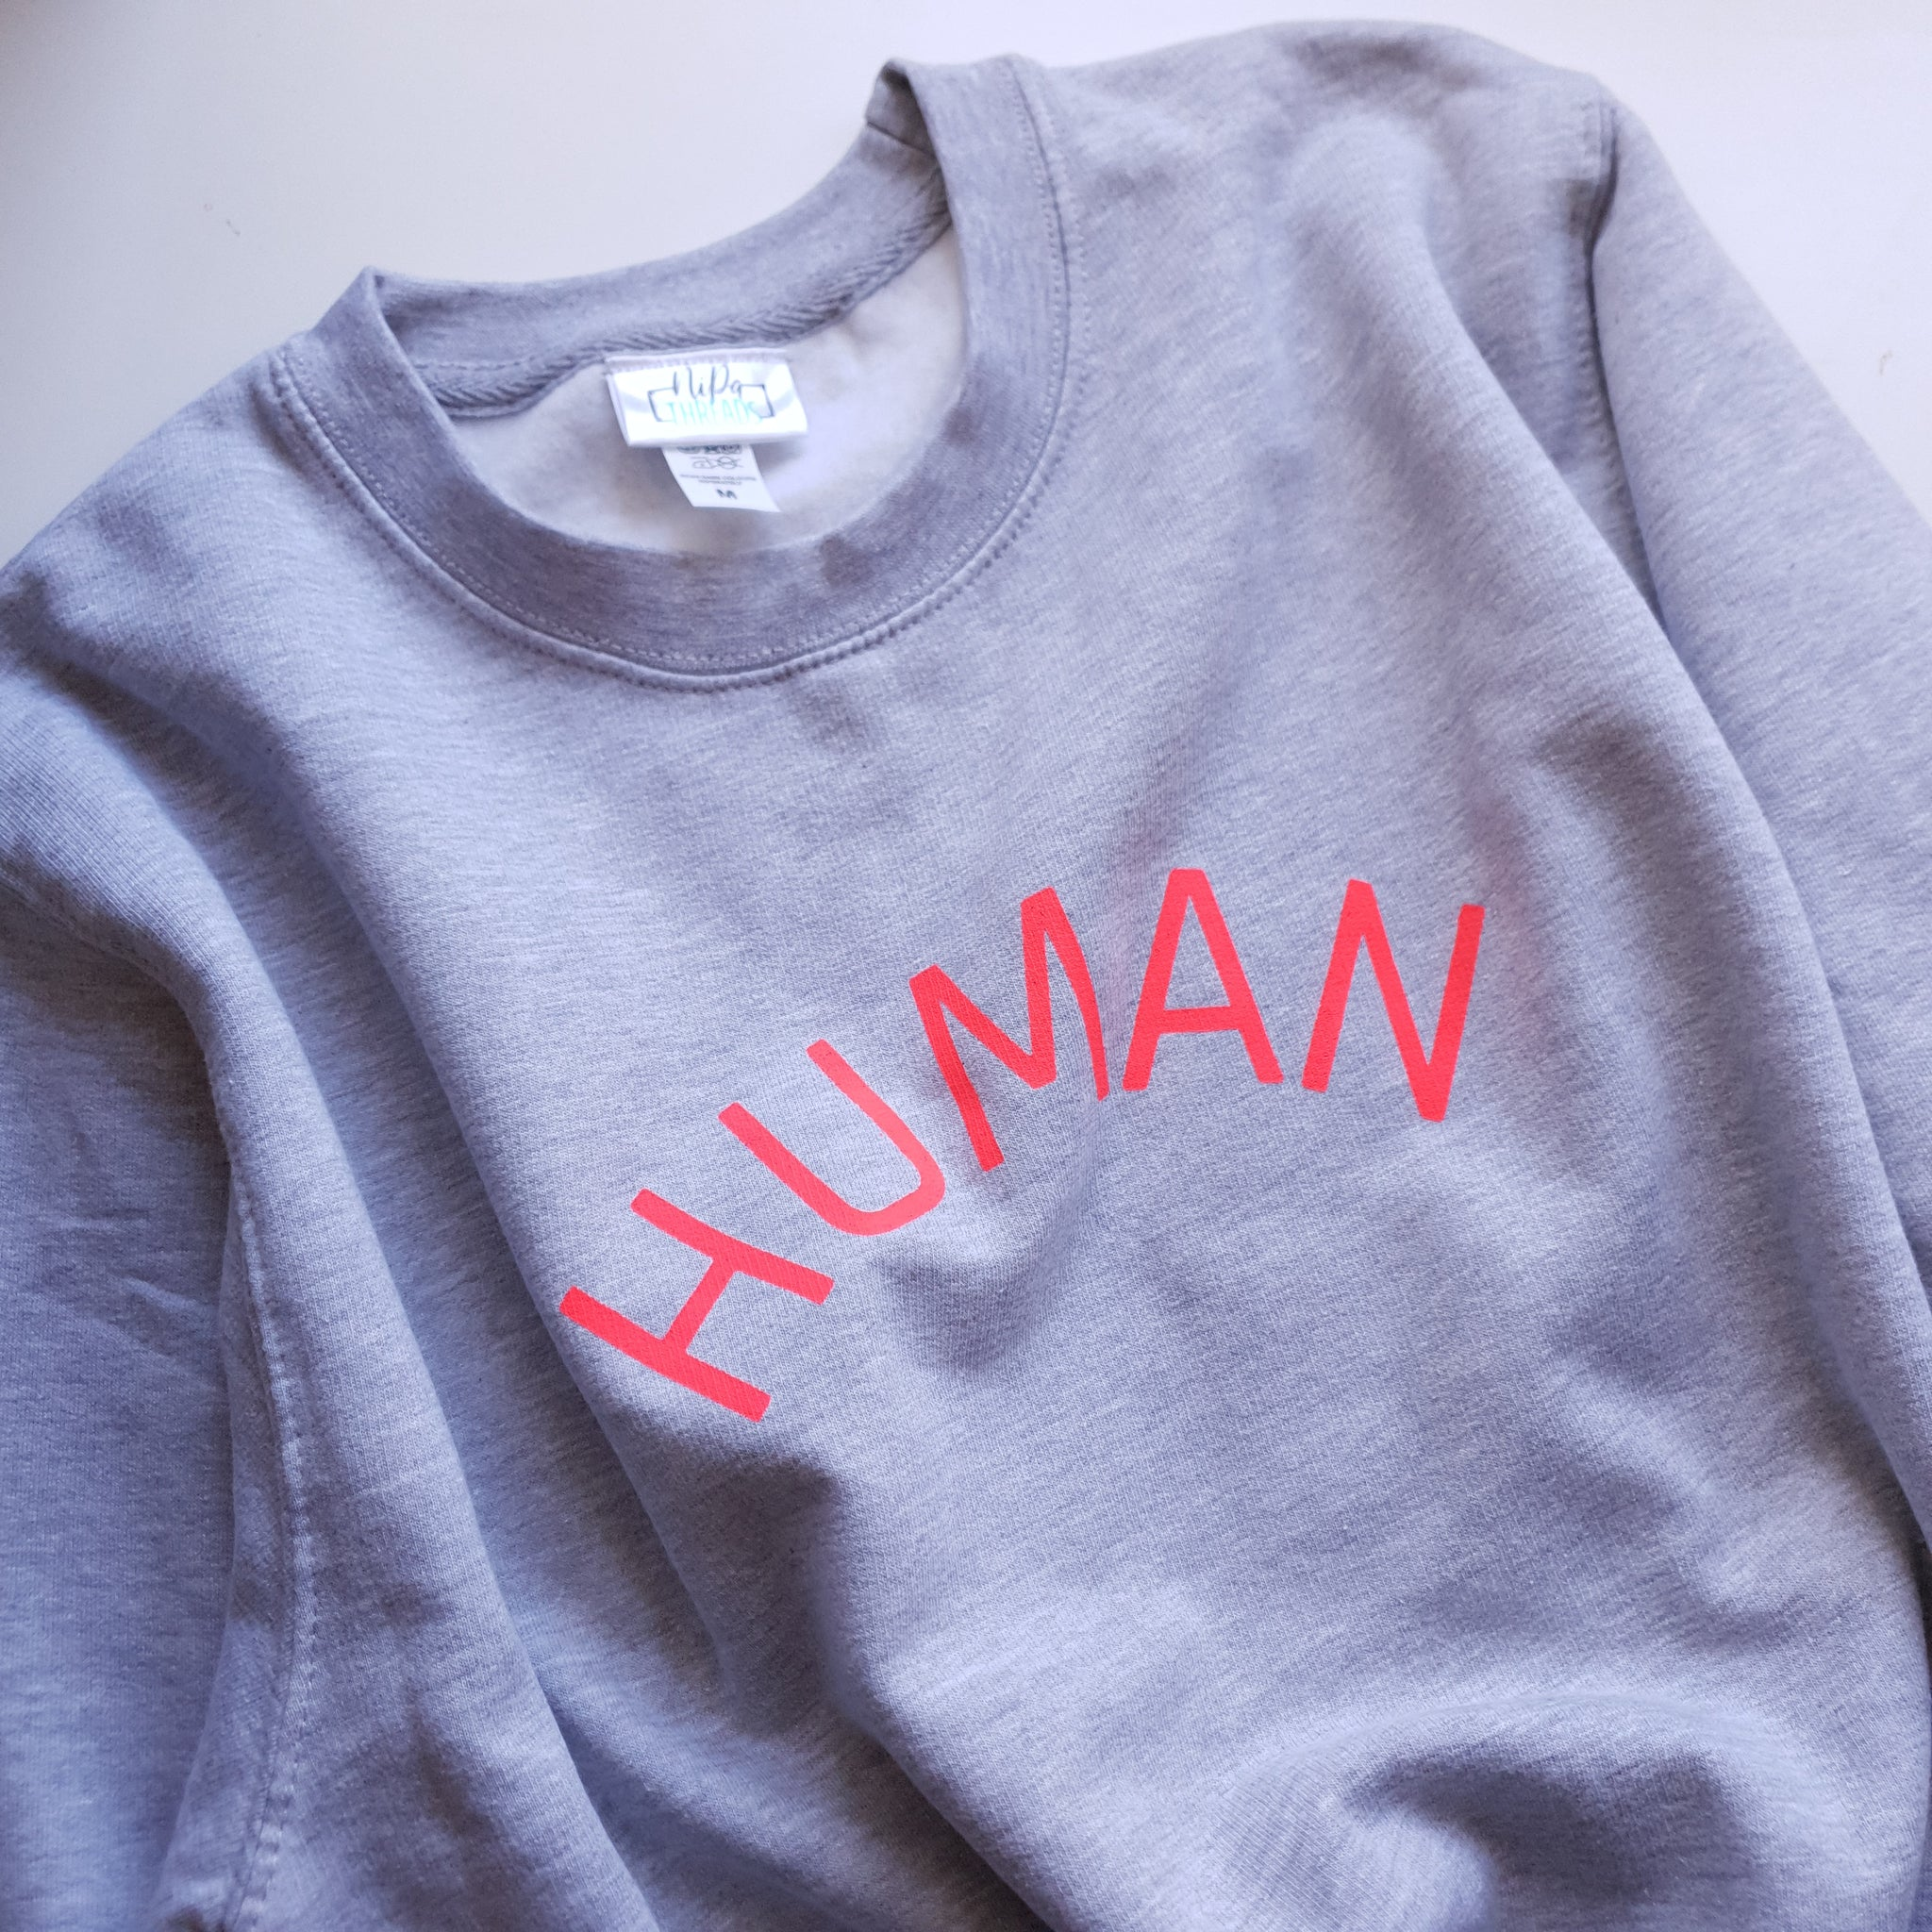 Light grey adult unisex sweatshirt with the HUMAN logo in glow coral ink.